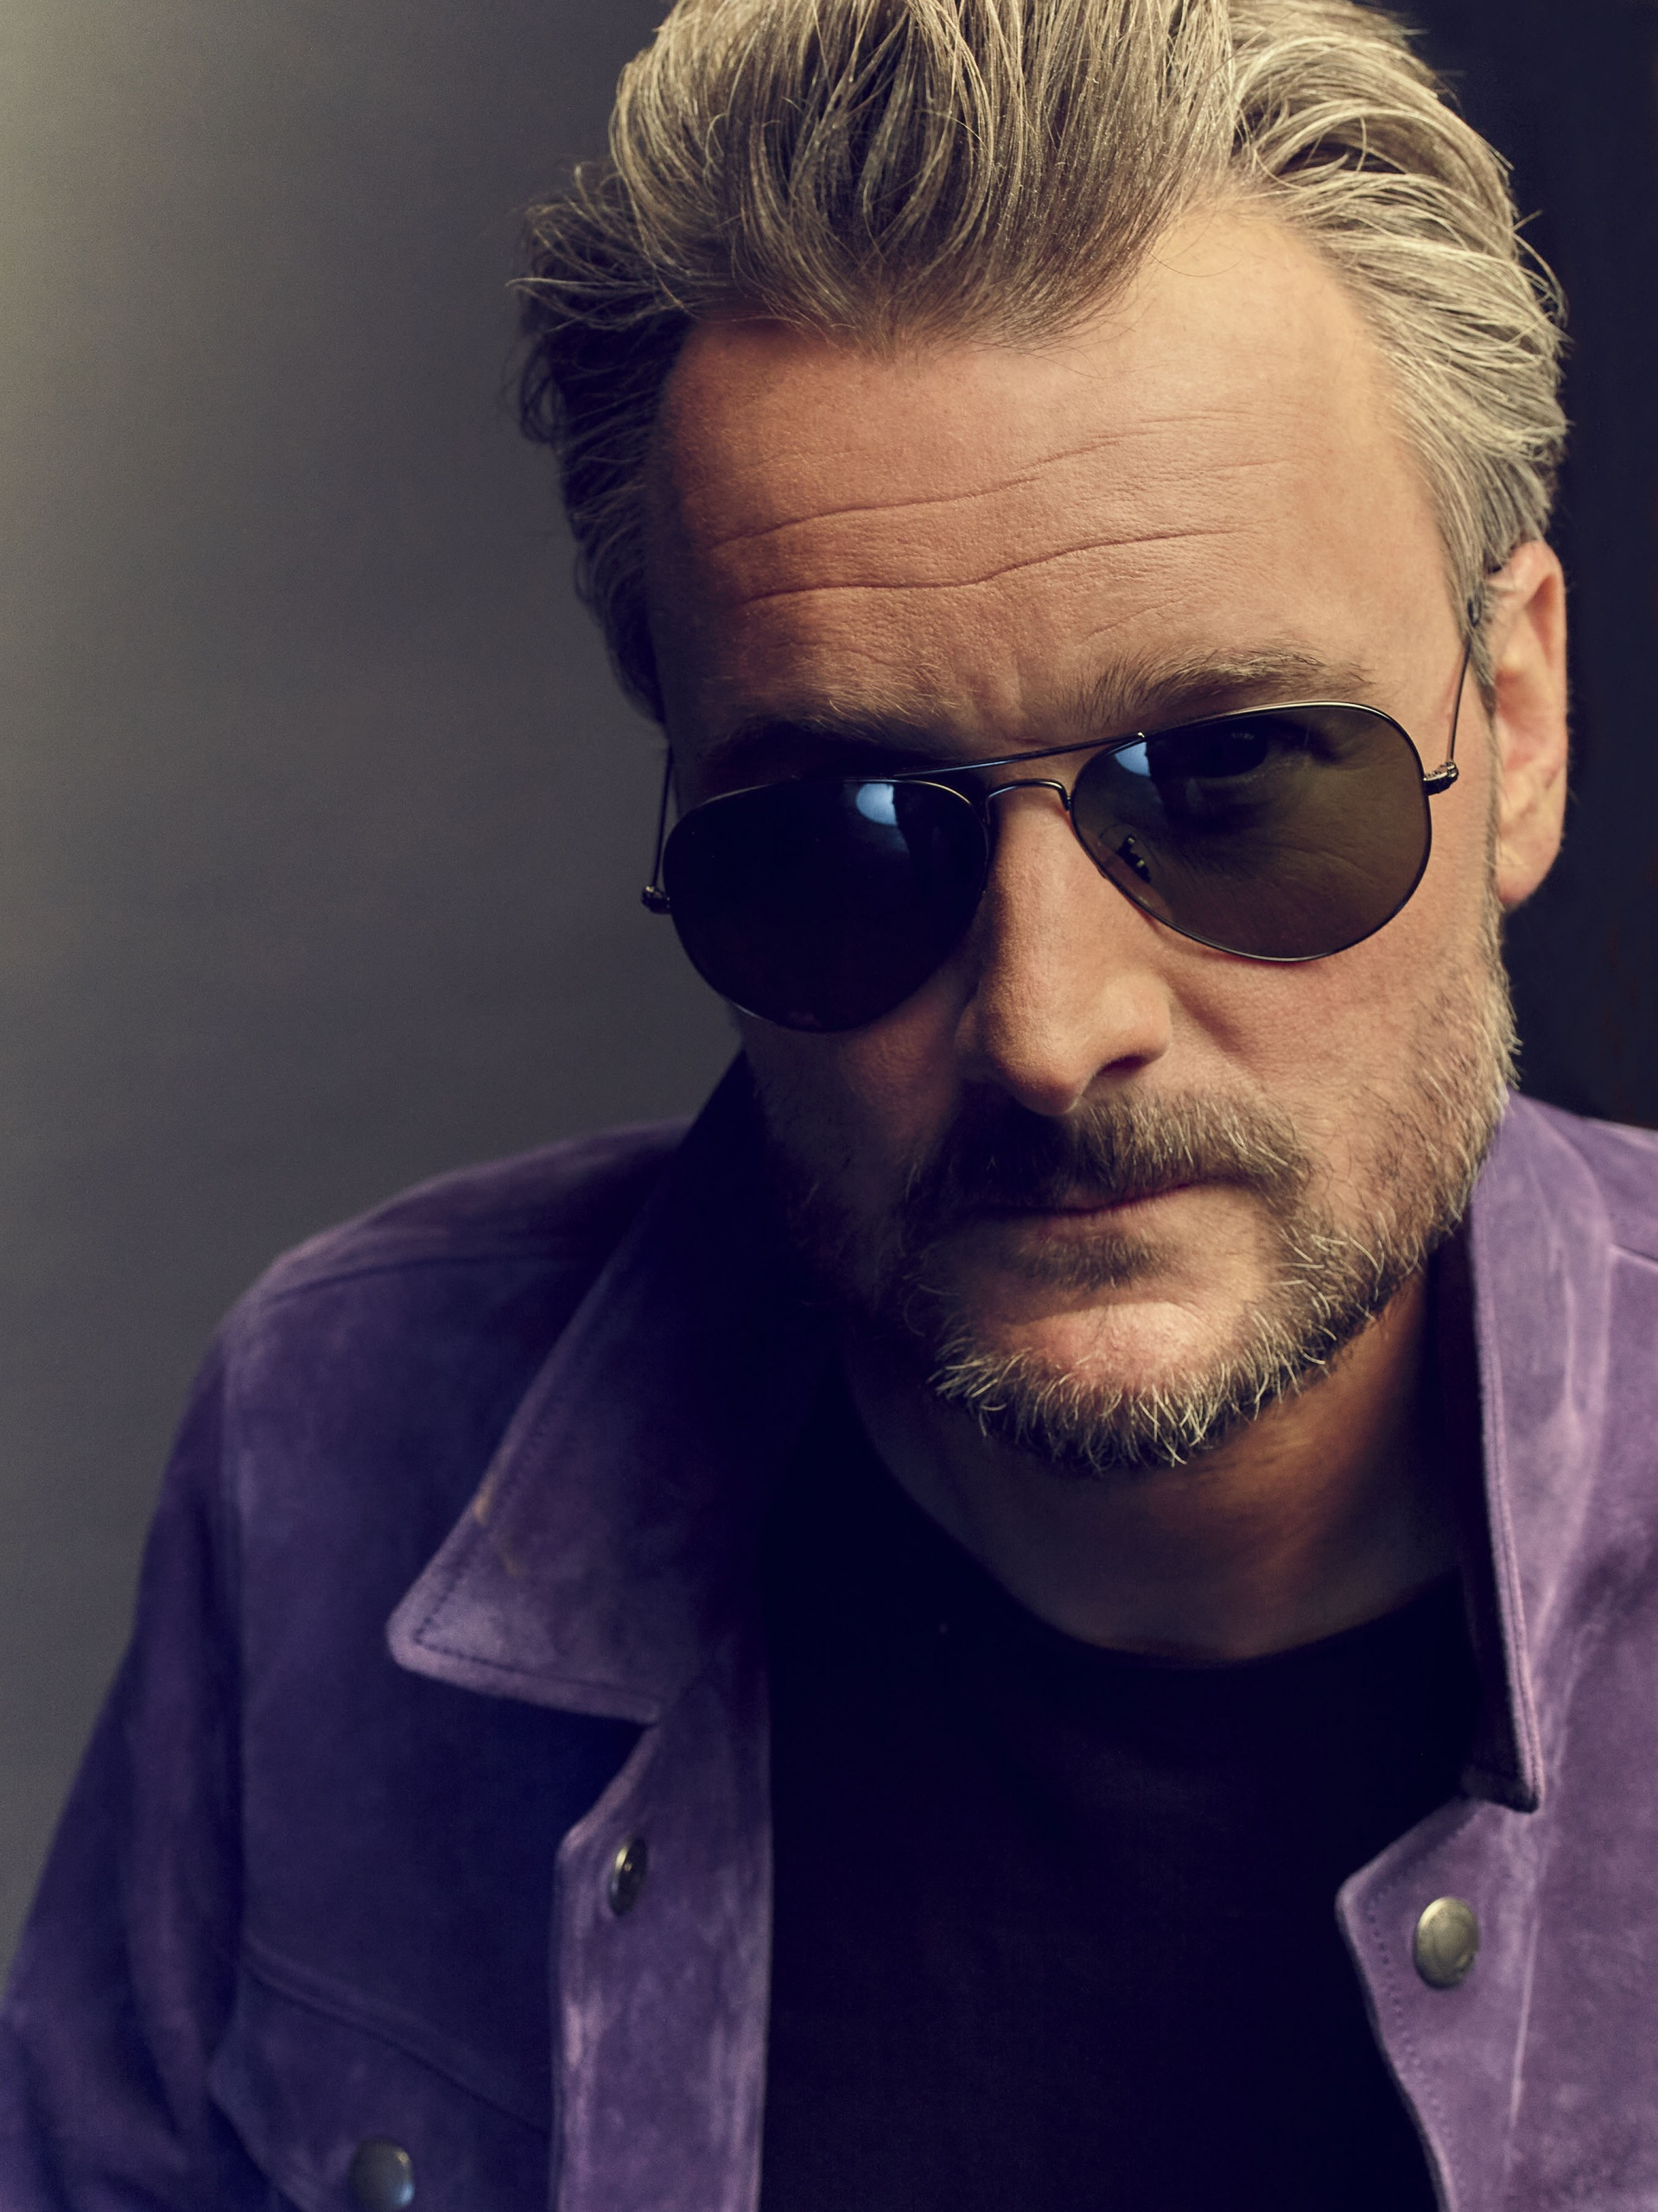 ERIC CHURCH EARNS BACK-TO-BACK NO. 1 DEBUTS ON THE ALL-GENRE BILLBOARD TOP ALBUM SALES CHART AS SOUL REPLACES HEART IN THE TOP SPOT.